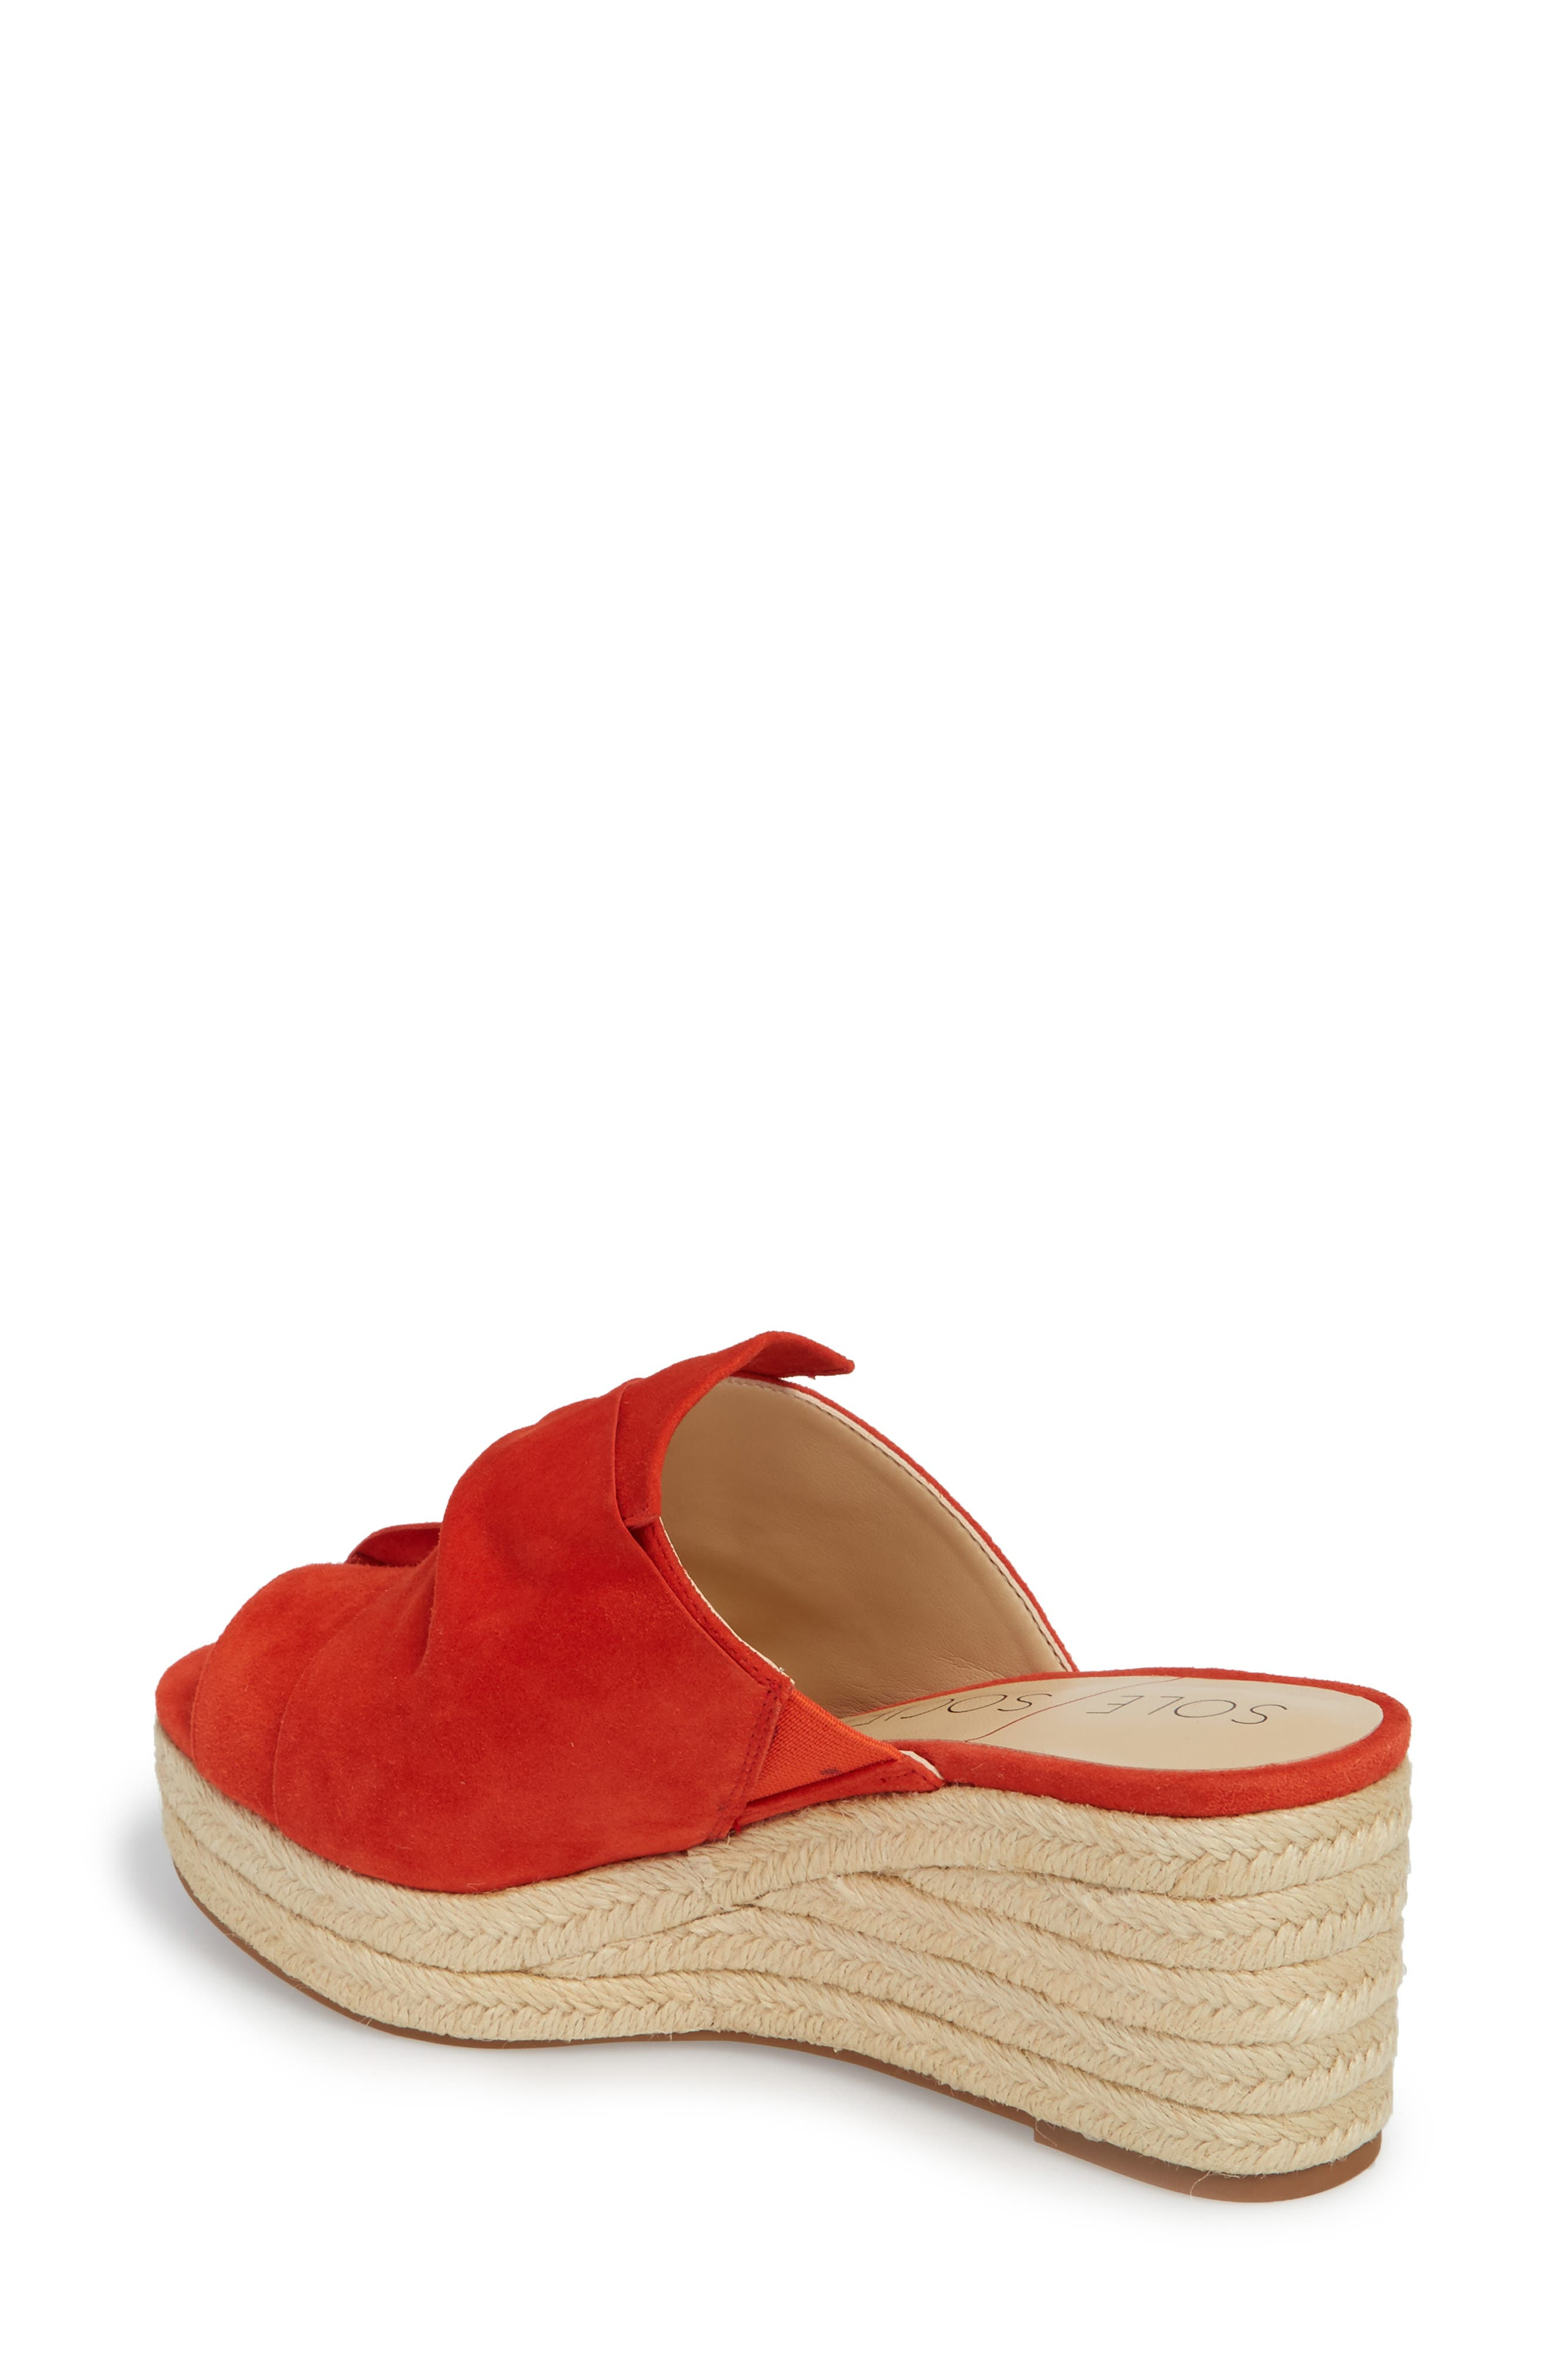 Carima Espadrille Wedge,                             Alternate thumbnail 2, color,                             Bright Coral Suede